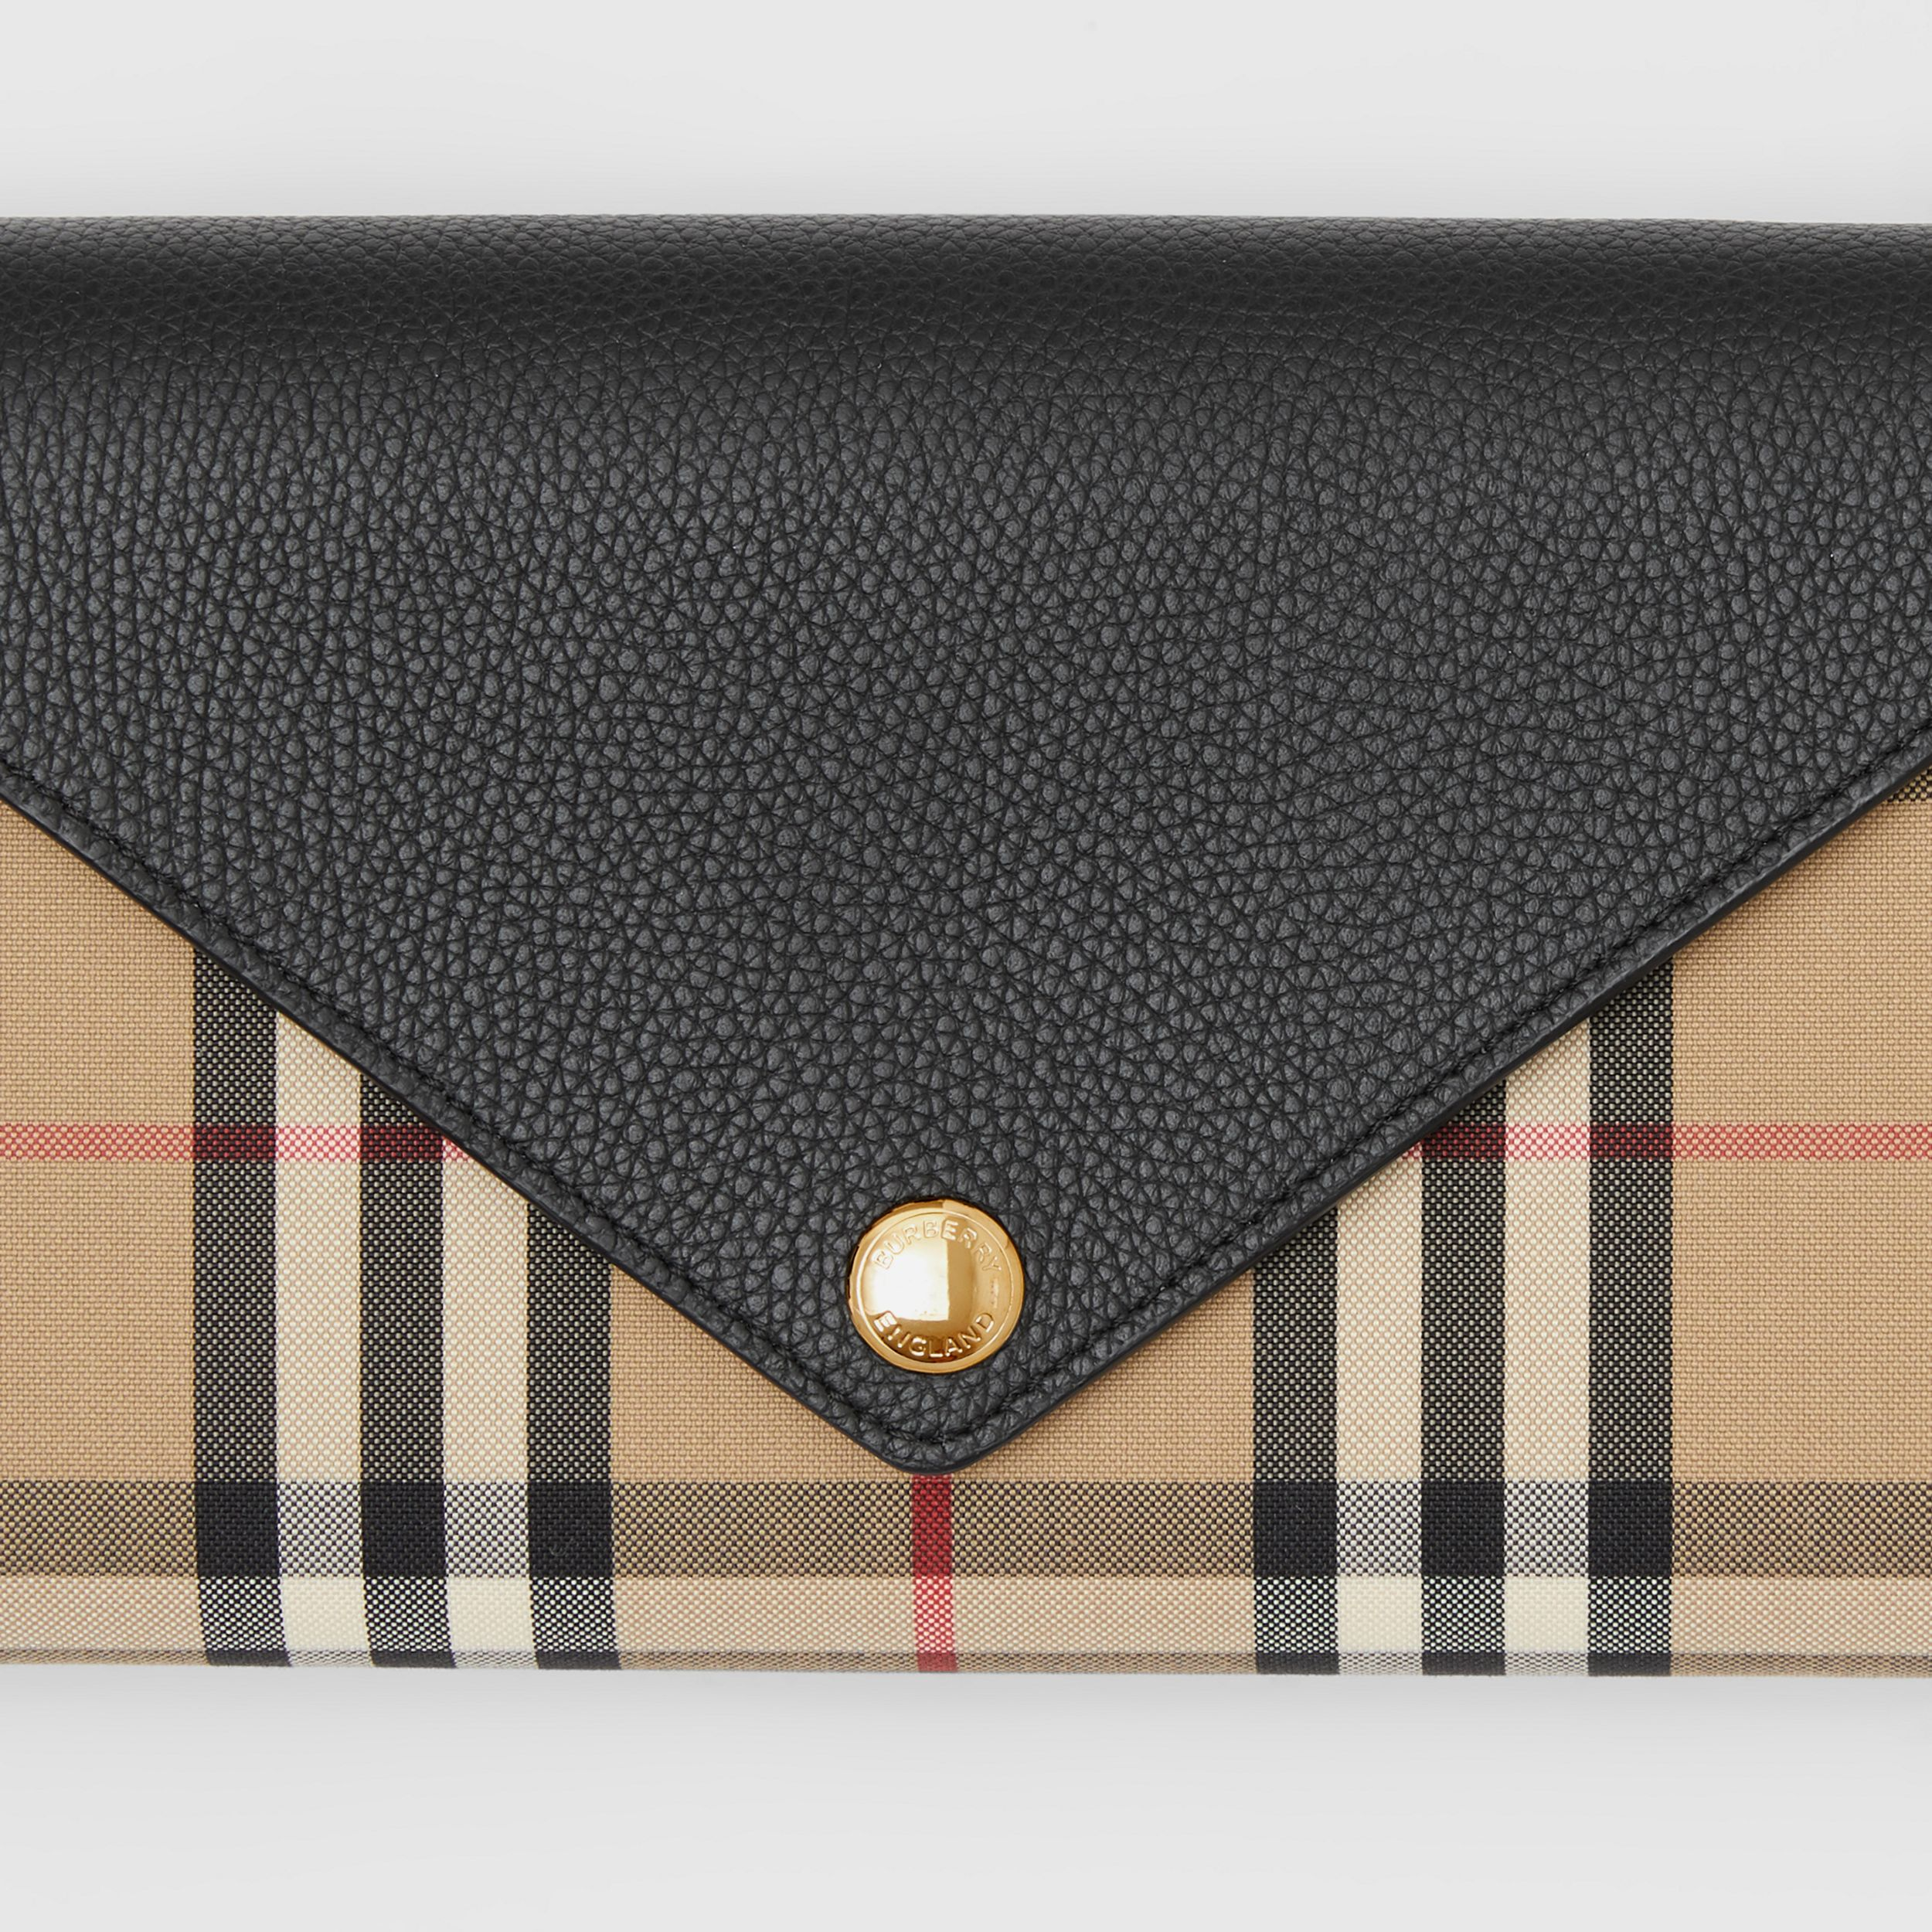 Vintage Check and Leather Wallet with Detachable Strap in Black - Women | Burberry - 2